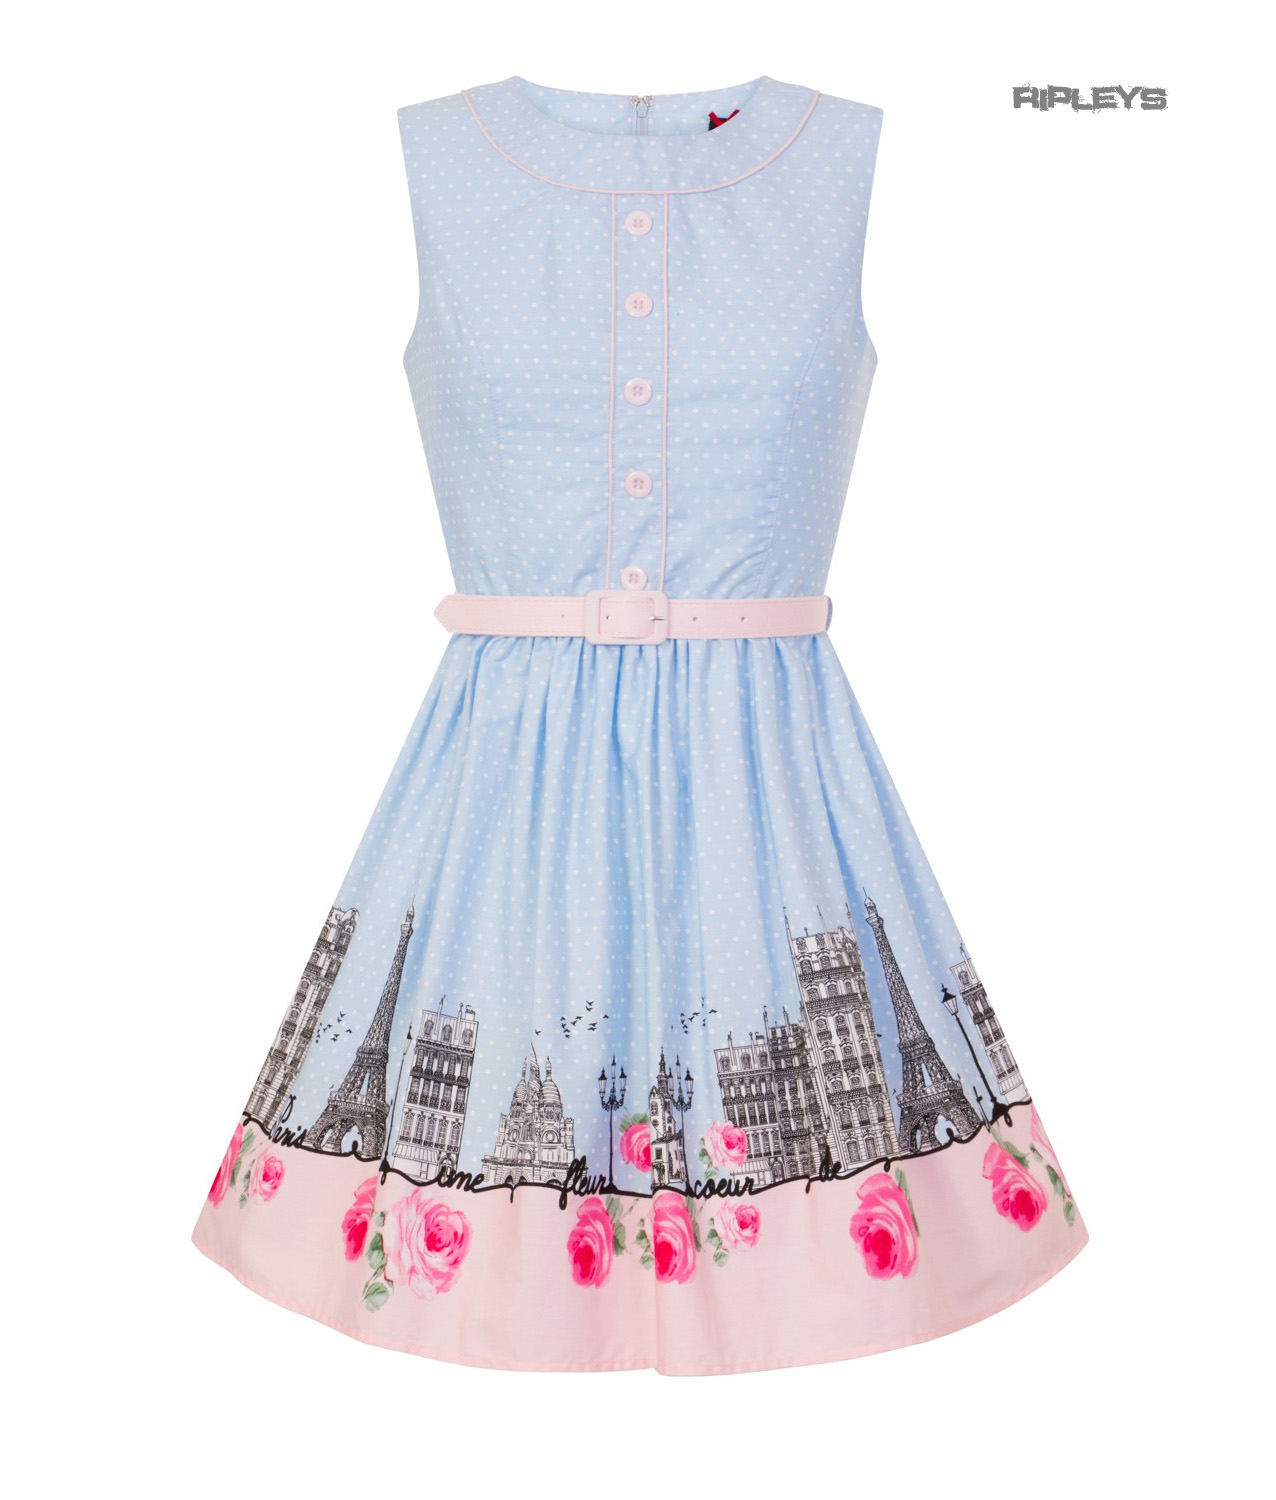 Hell-Bunny-50s-Vintage-Blue-Polka-Dot-PANAME-Mini-Dress-Paris-All-Sizes thumbnail 46